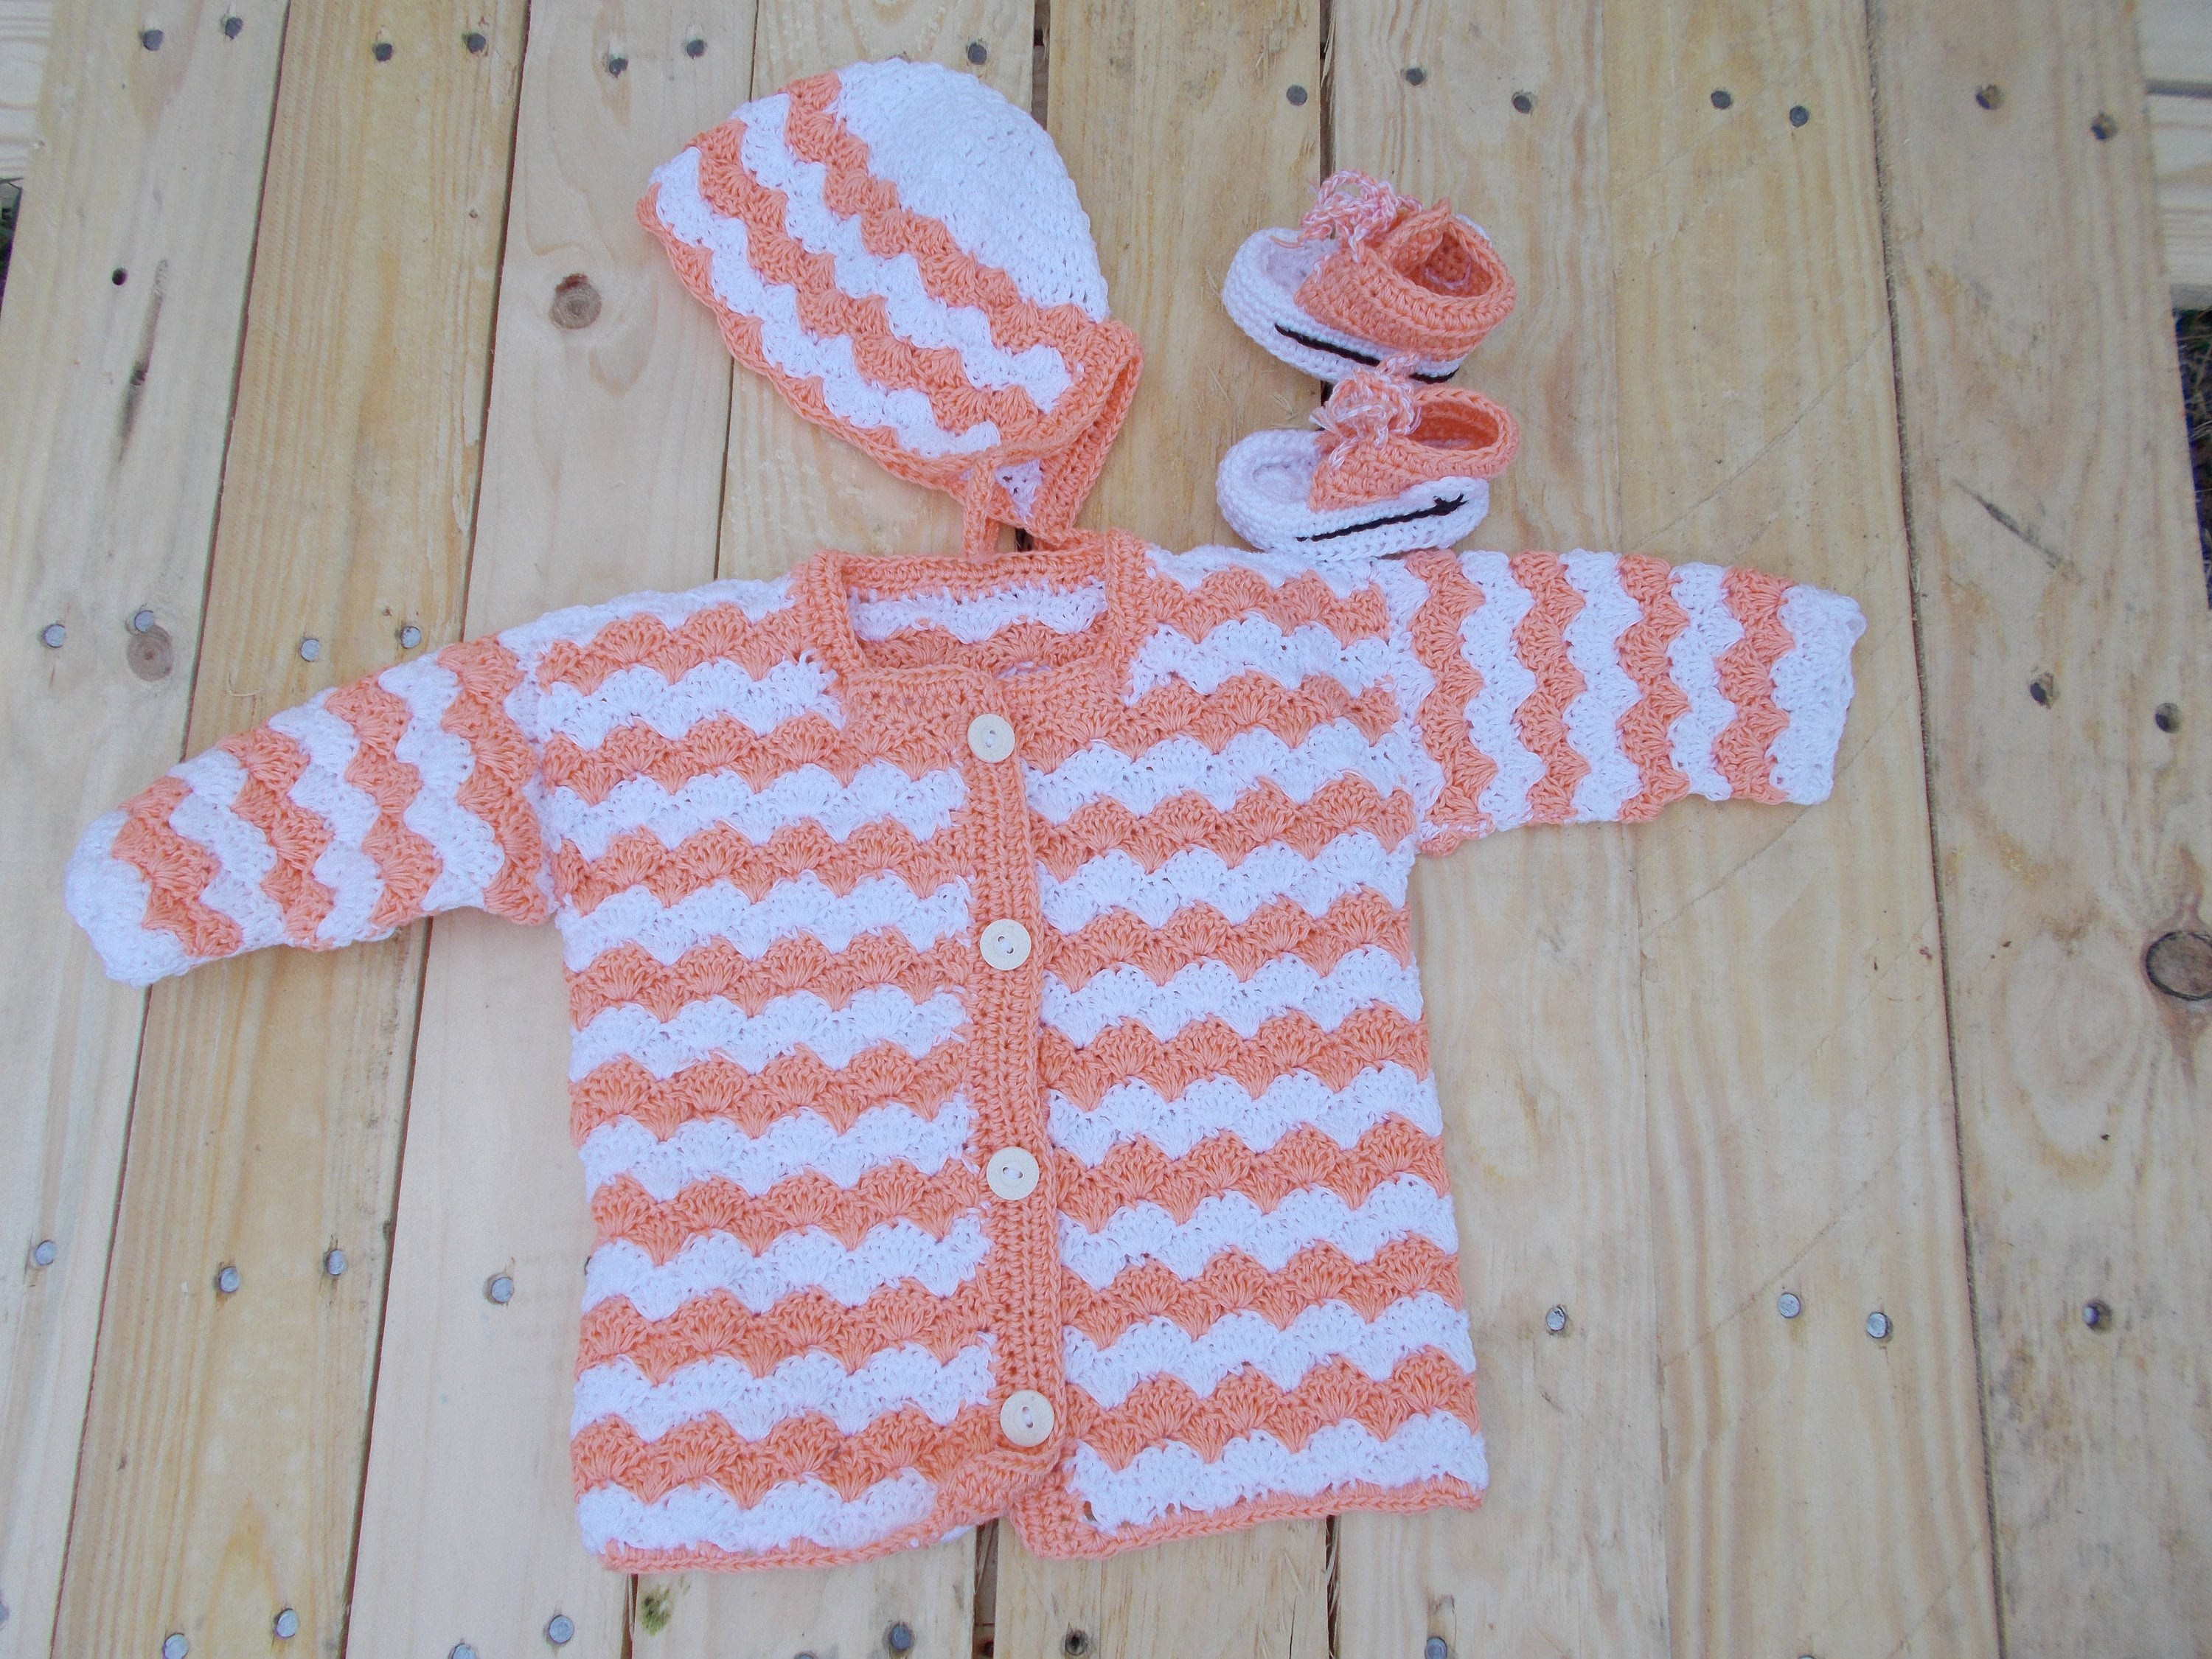 cb4825eb7 Baby sets crochet baby sweater set baby gifts Christmas